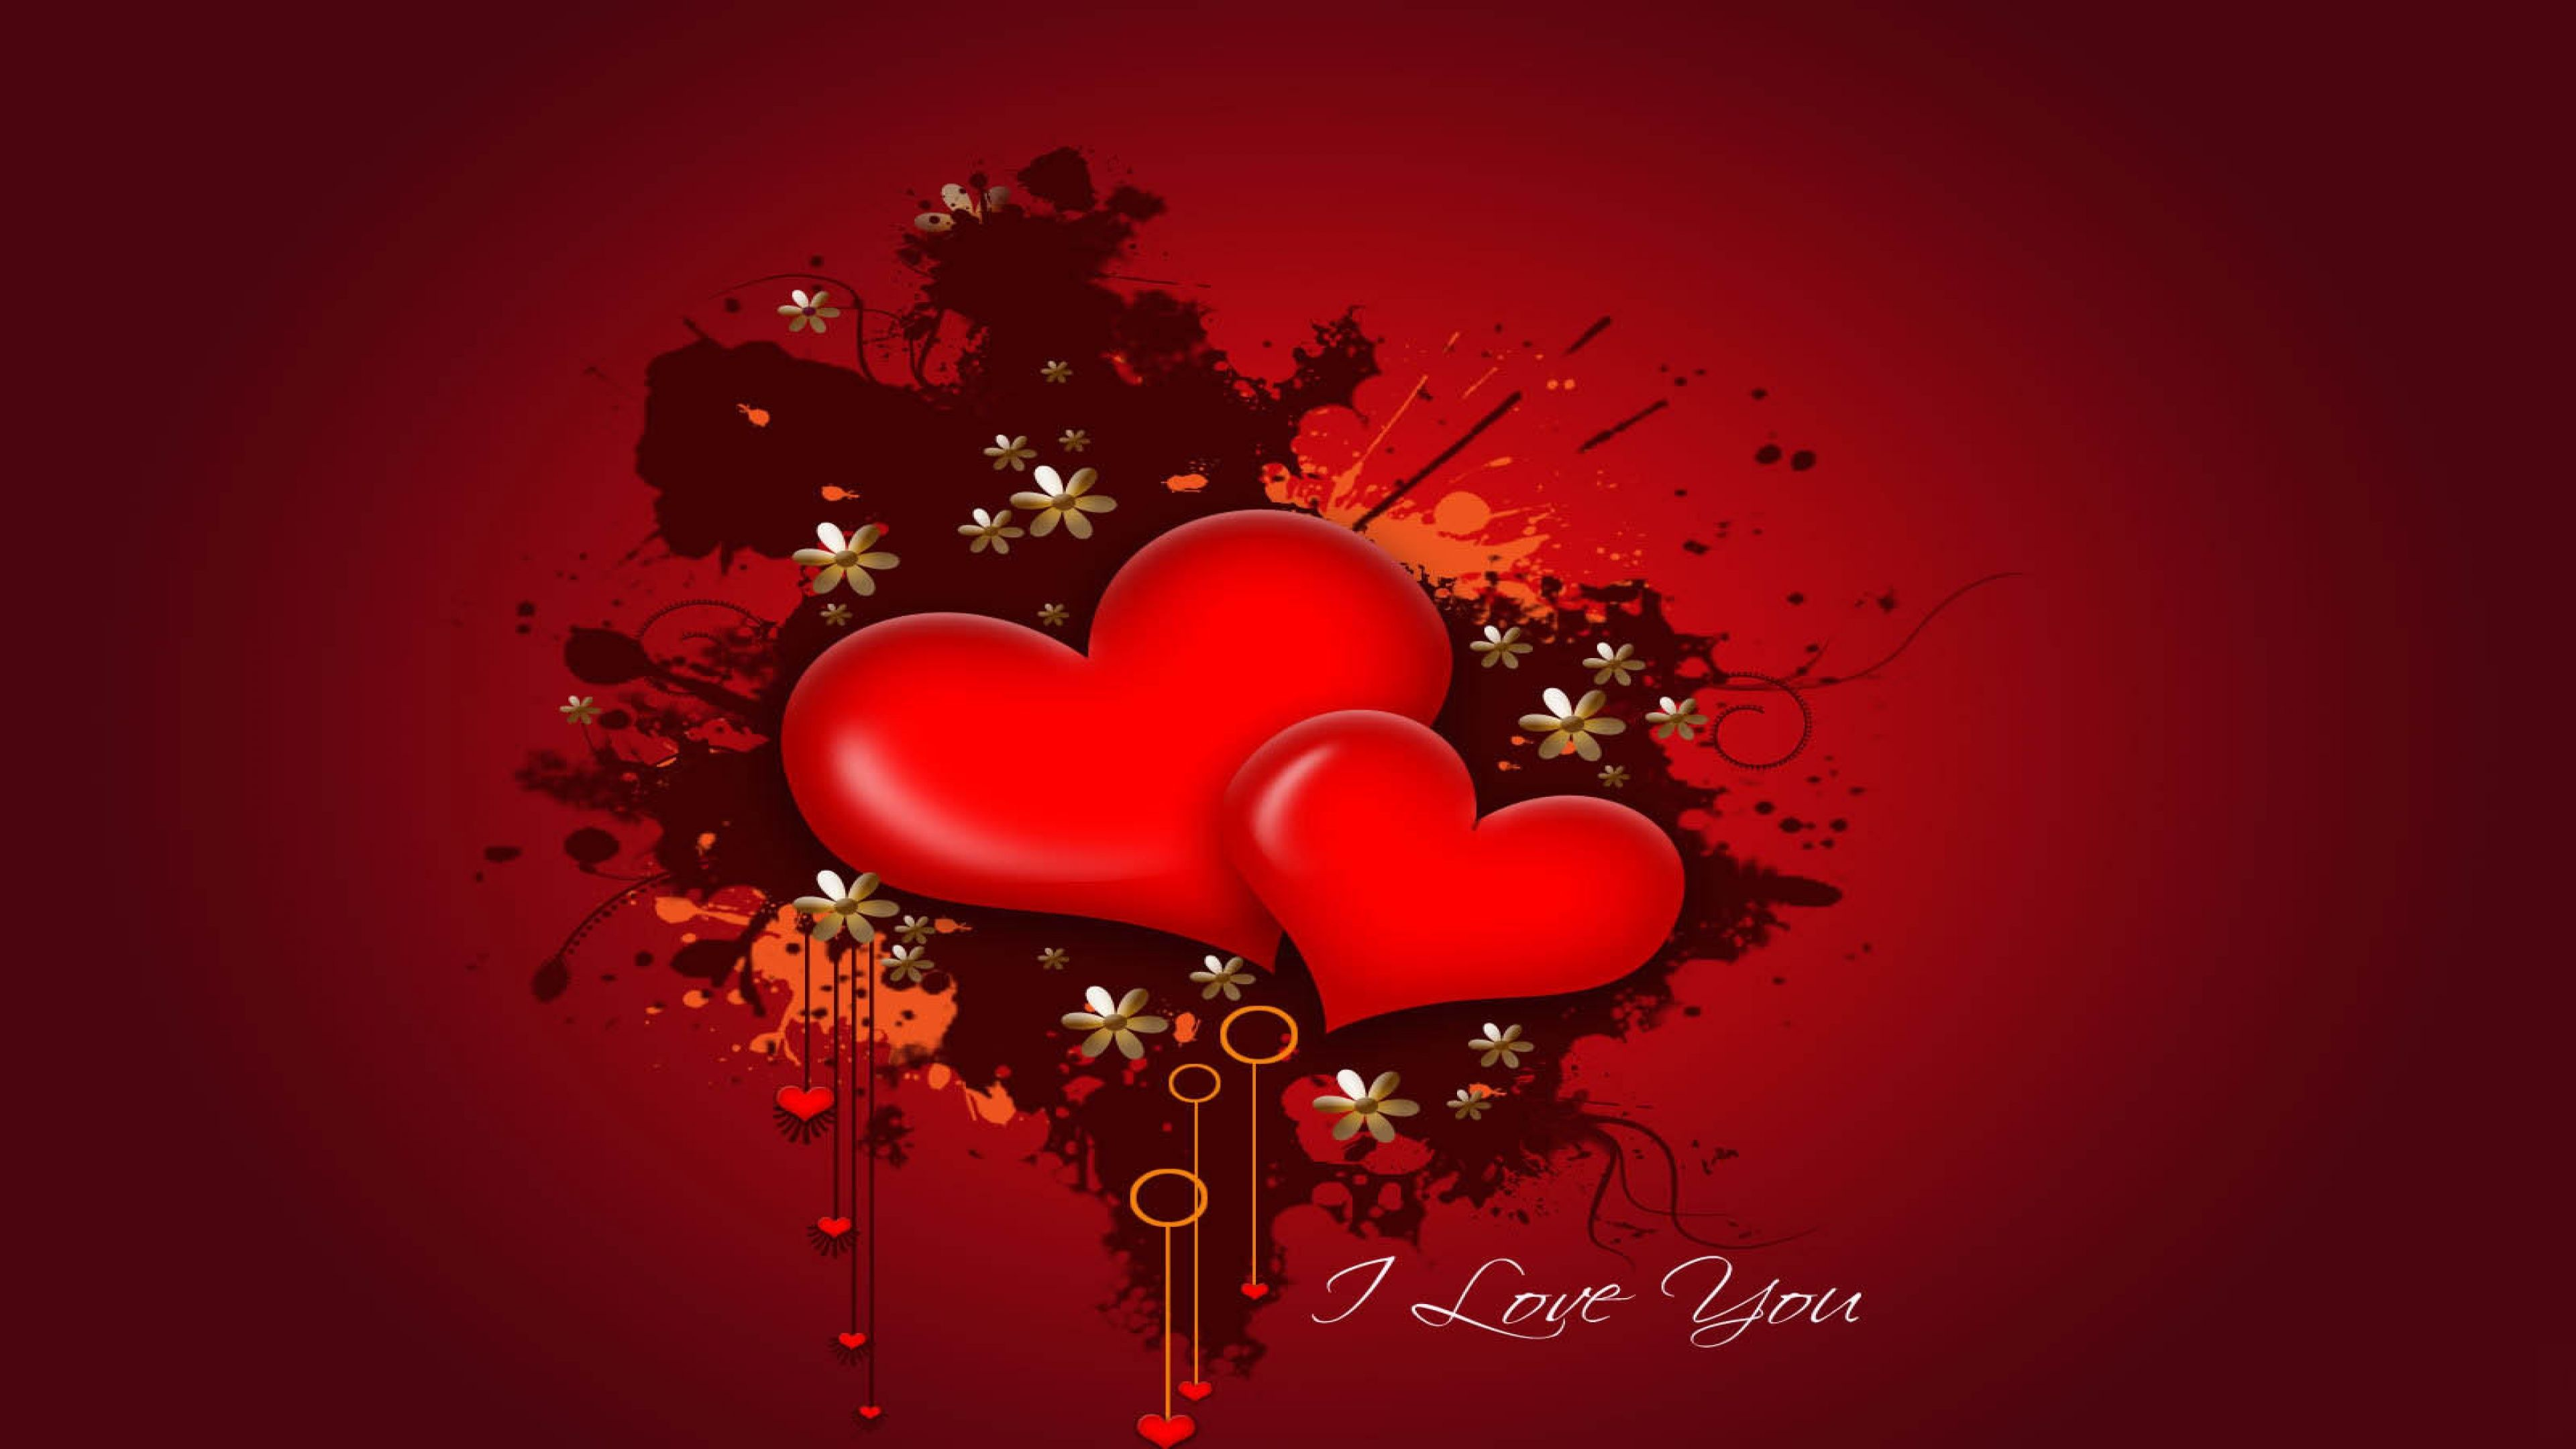 3840x2160 45+ Modern Valentine's Day Wallpapers - Download at WallpaperBro